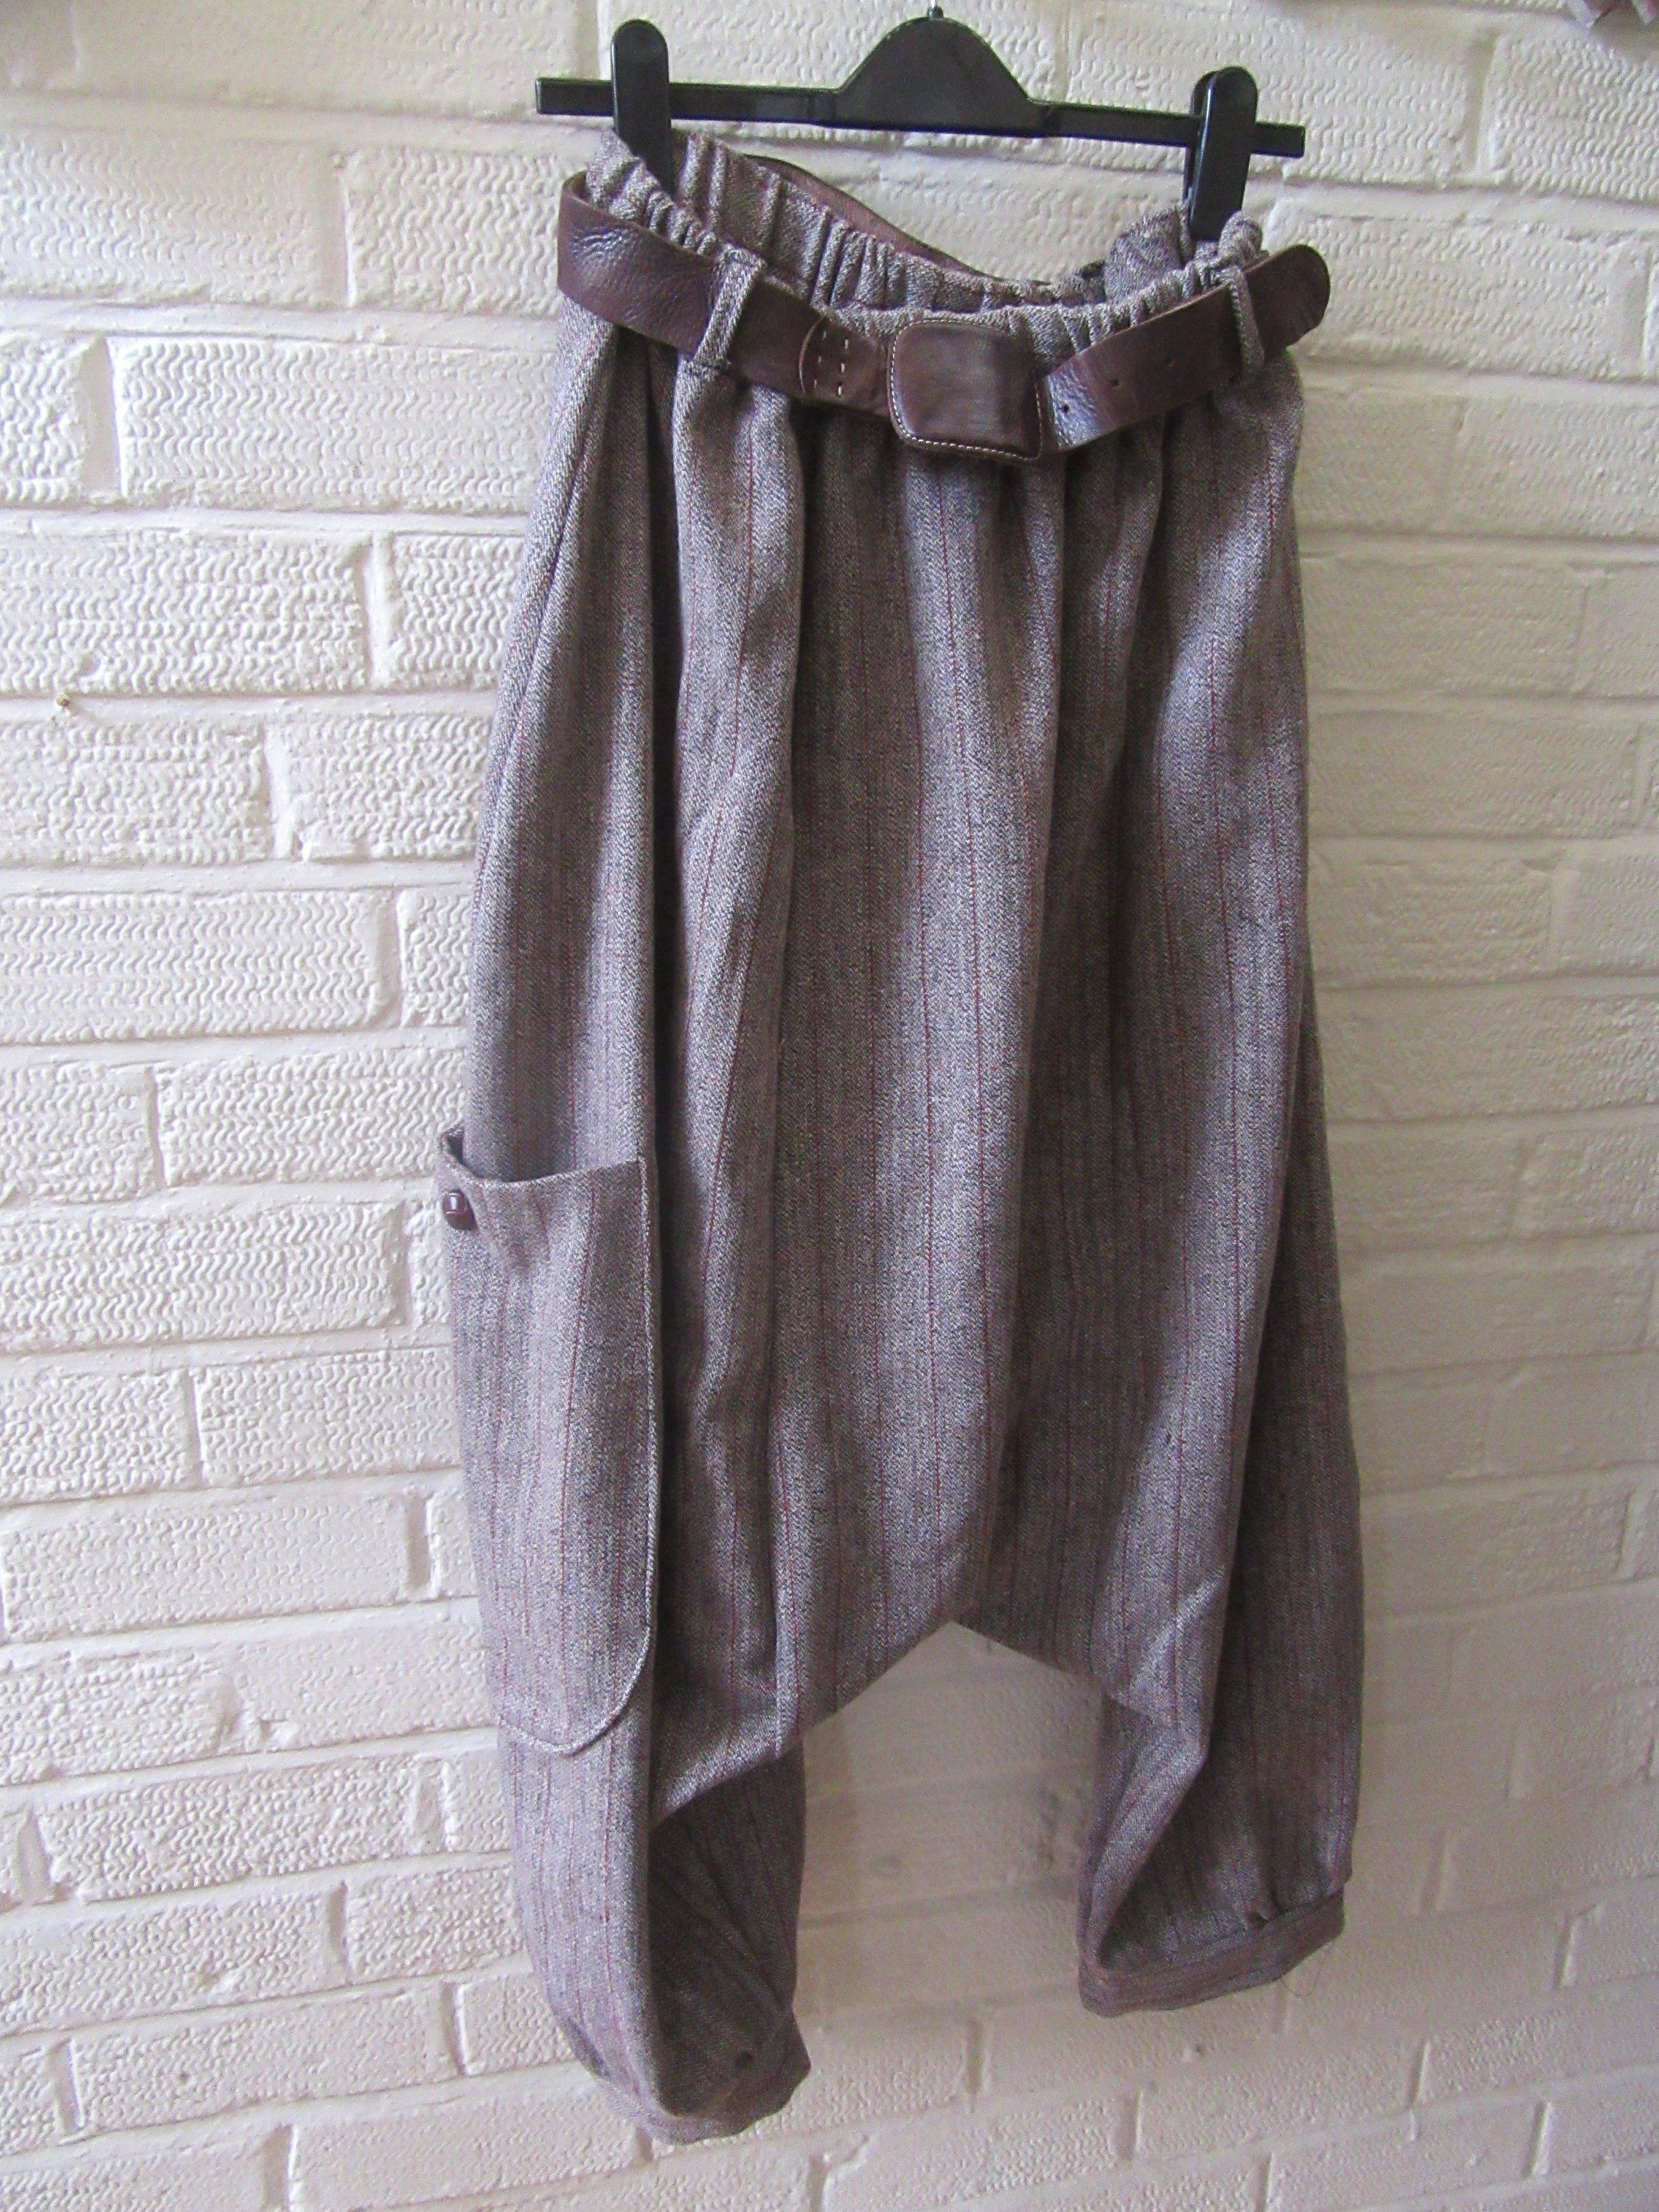 5ba8ae221a17 Quirky Lagenlook dropped crotch.pantaloons